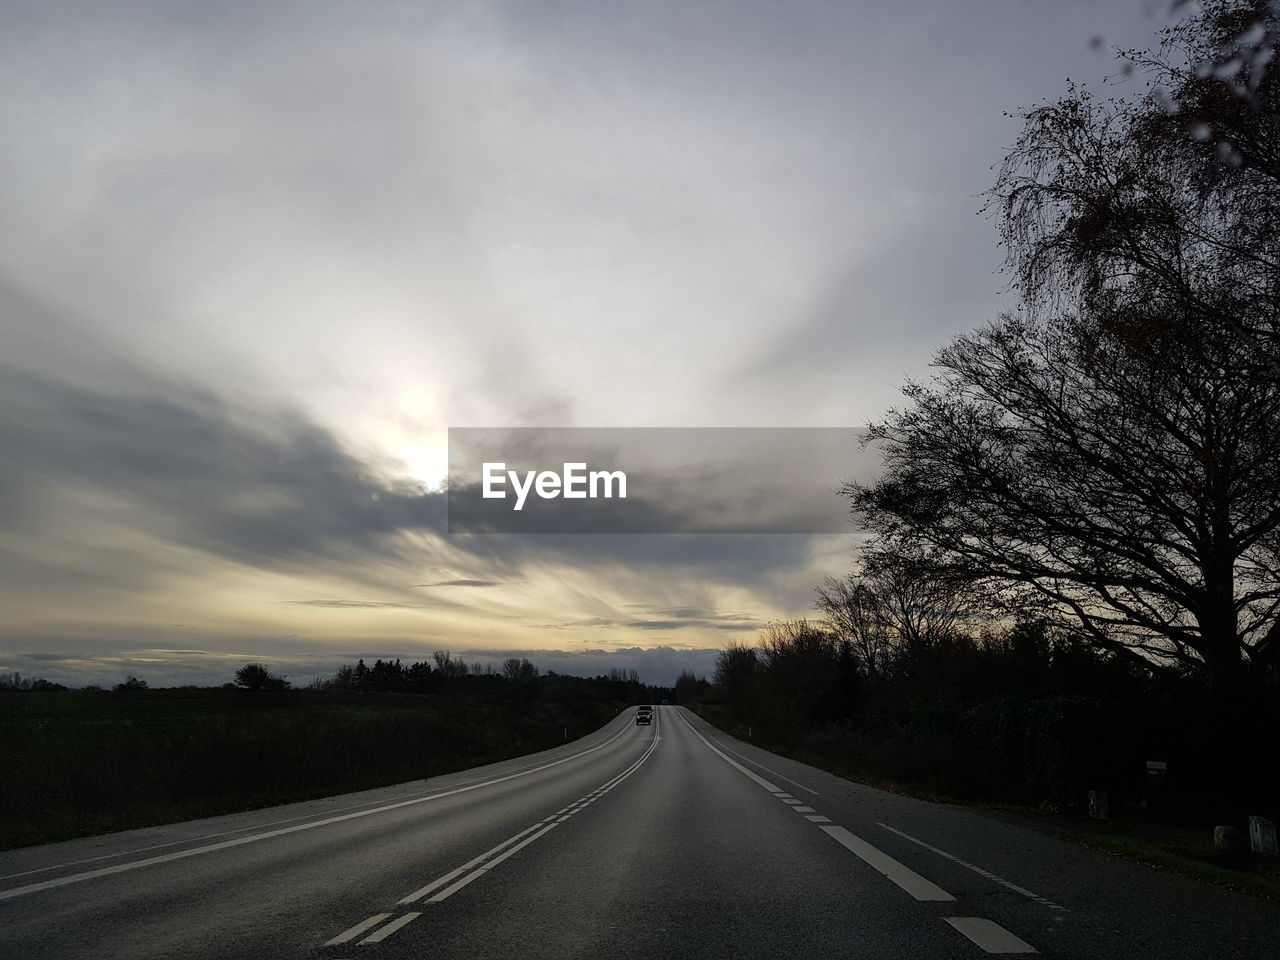 road, sky, transportation, direction, the way forward, cloud - sky, tree, plant, symbol, sign, diminishing perspective, no people, road marking, nature, marking, beauty in nature, vanishing point, outdoors, highway, non-urban scene